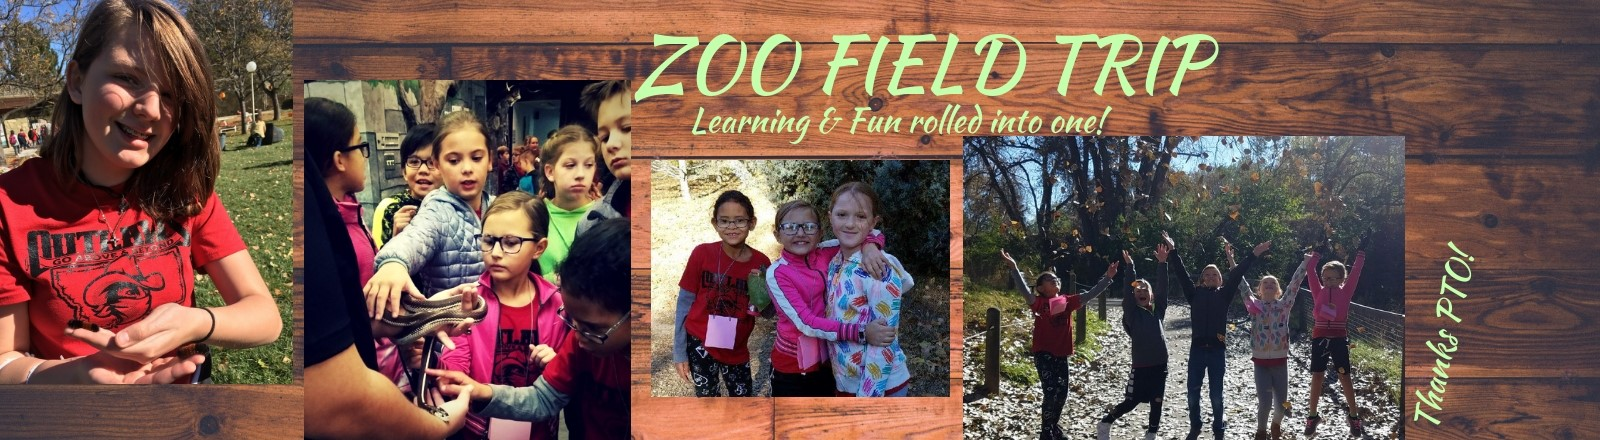 Zoo field trip photos